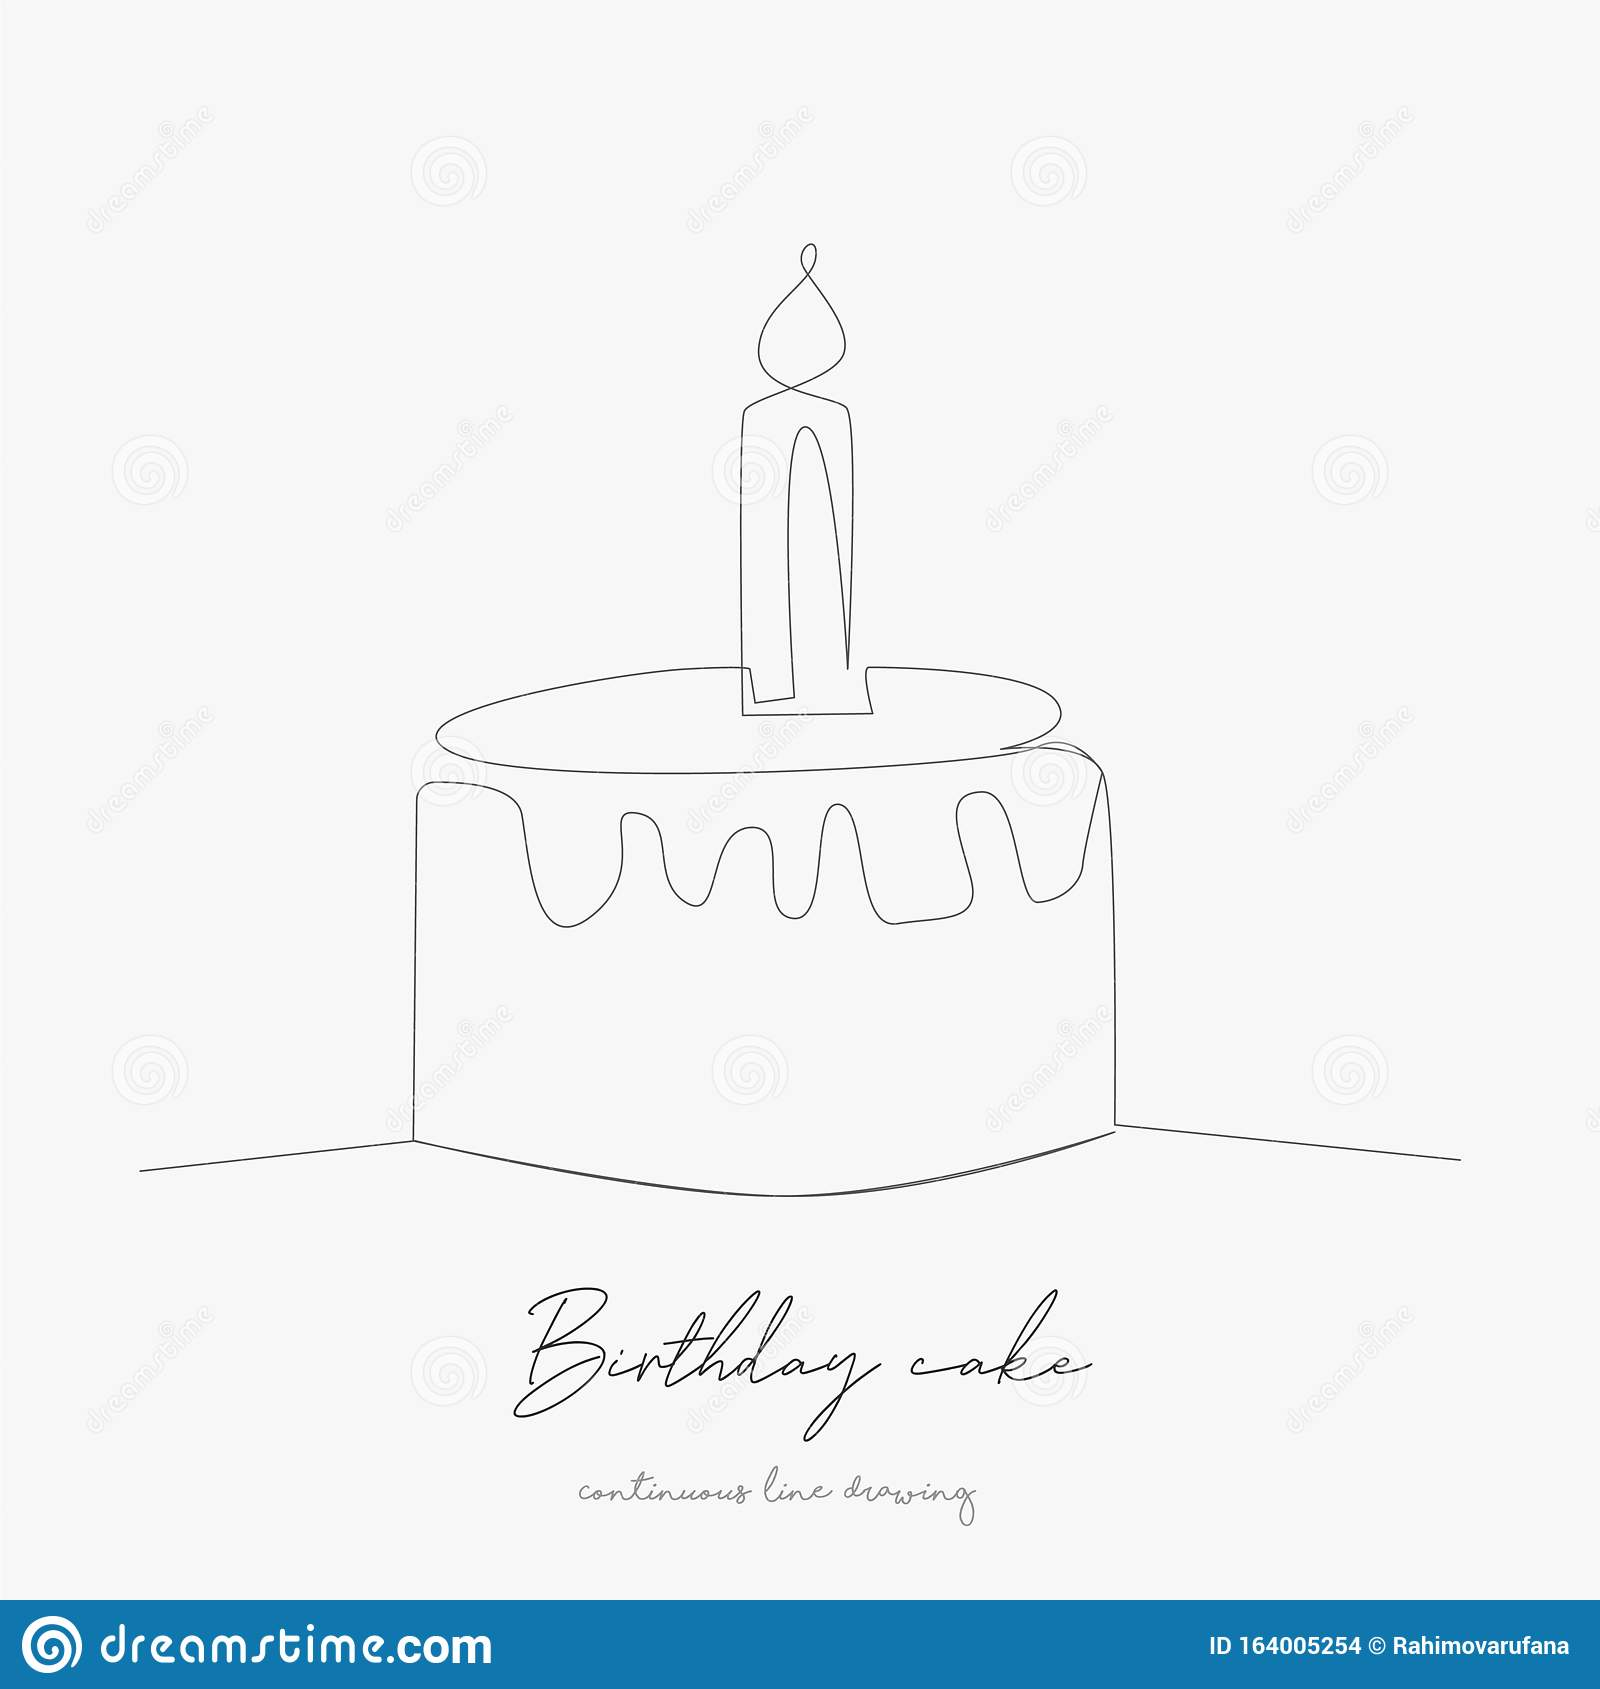 Continuous Line Drawing Birthday Cake Simple Vector Illustration Birthday Cake Concept Hand Drawing Sketch Line Stock Vector Illustration Of Doodle Event 164005254